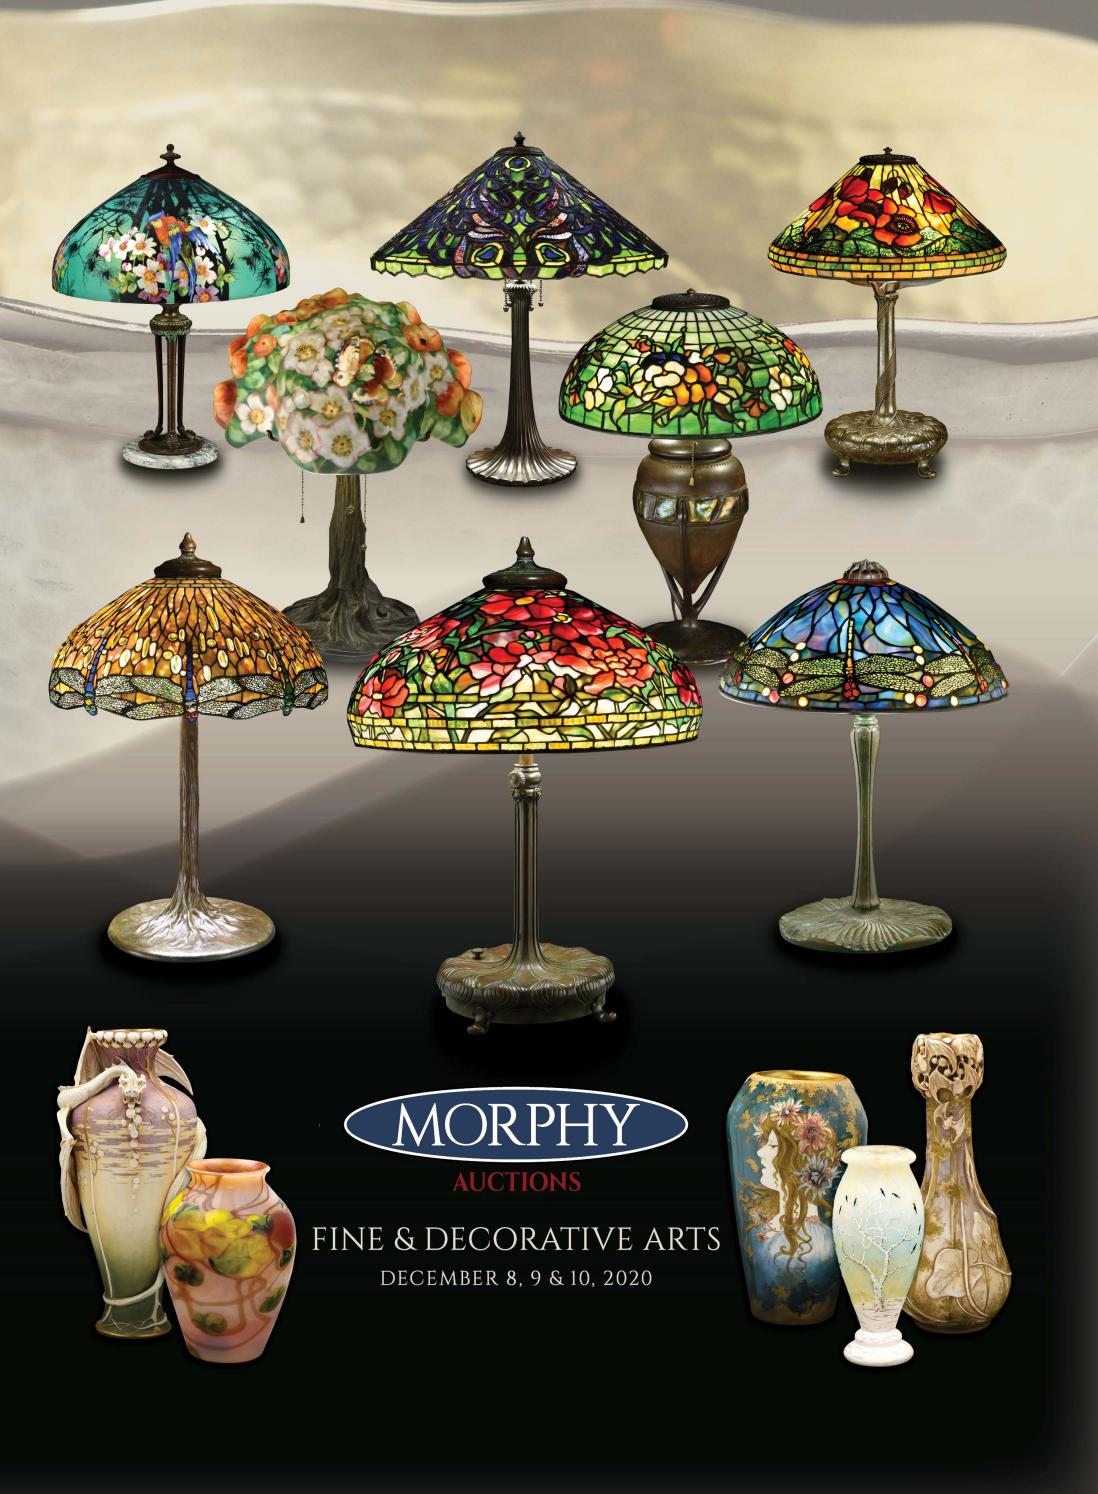 2020 December 8 9 10 Fine Decorative Arts By Morphy Auctions Issuu